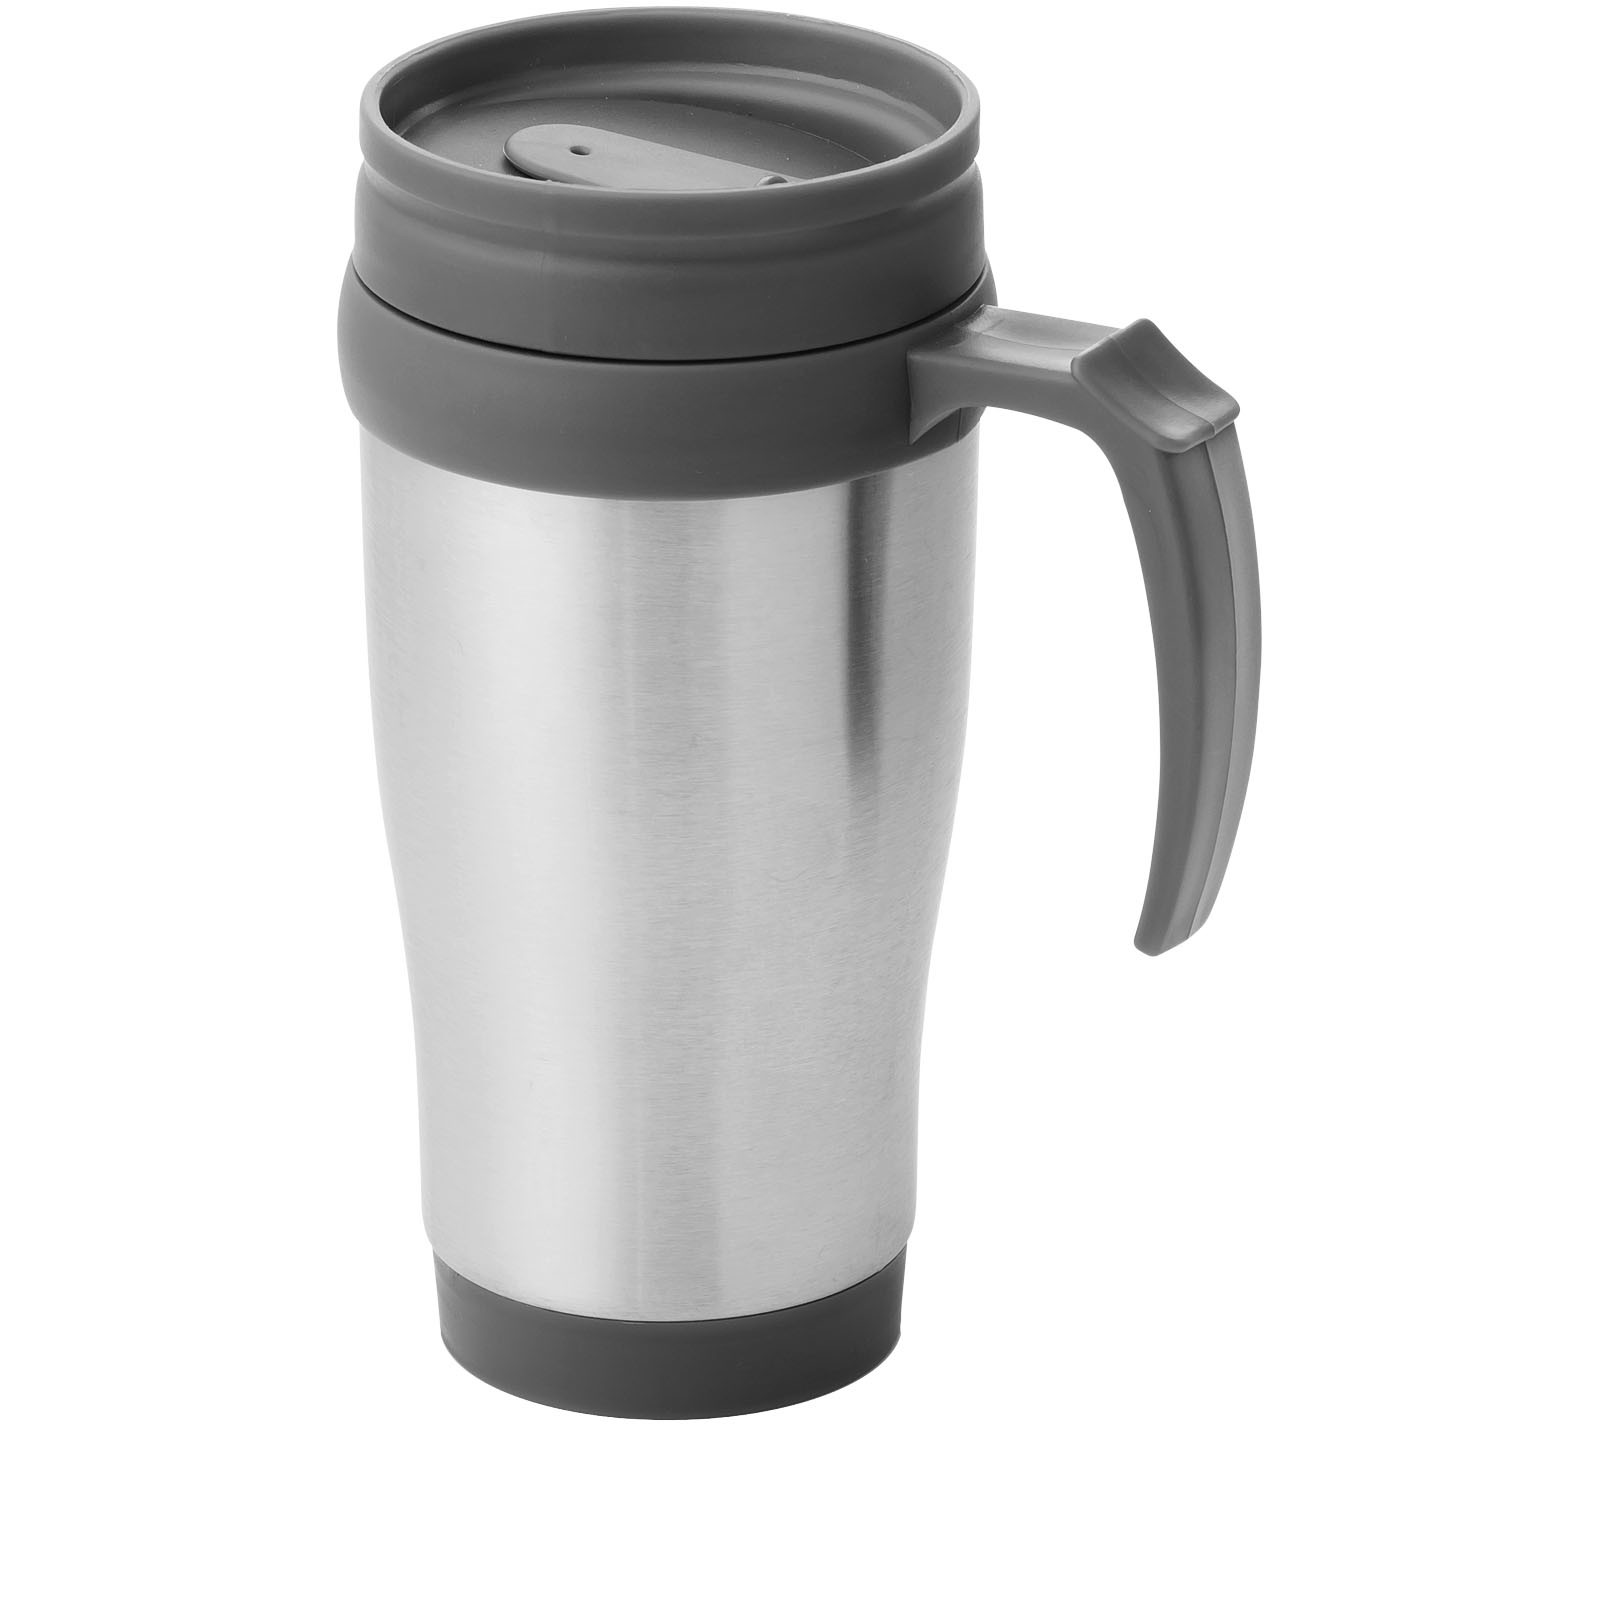 Sanibel 400 ml insulated mug - Silver / Grey